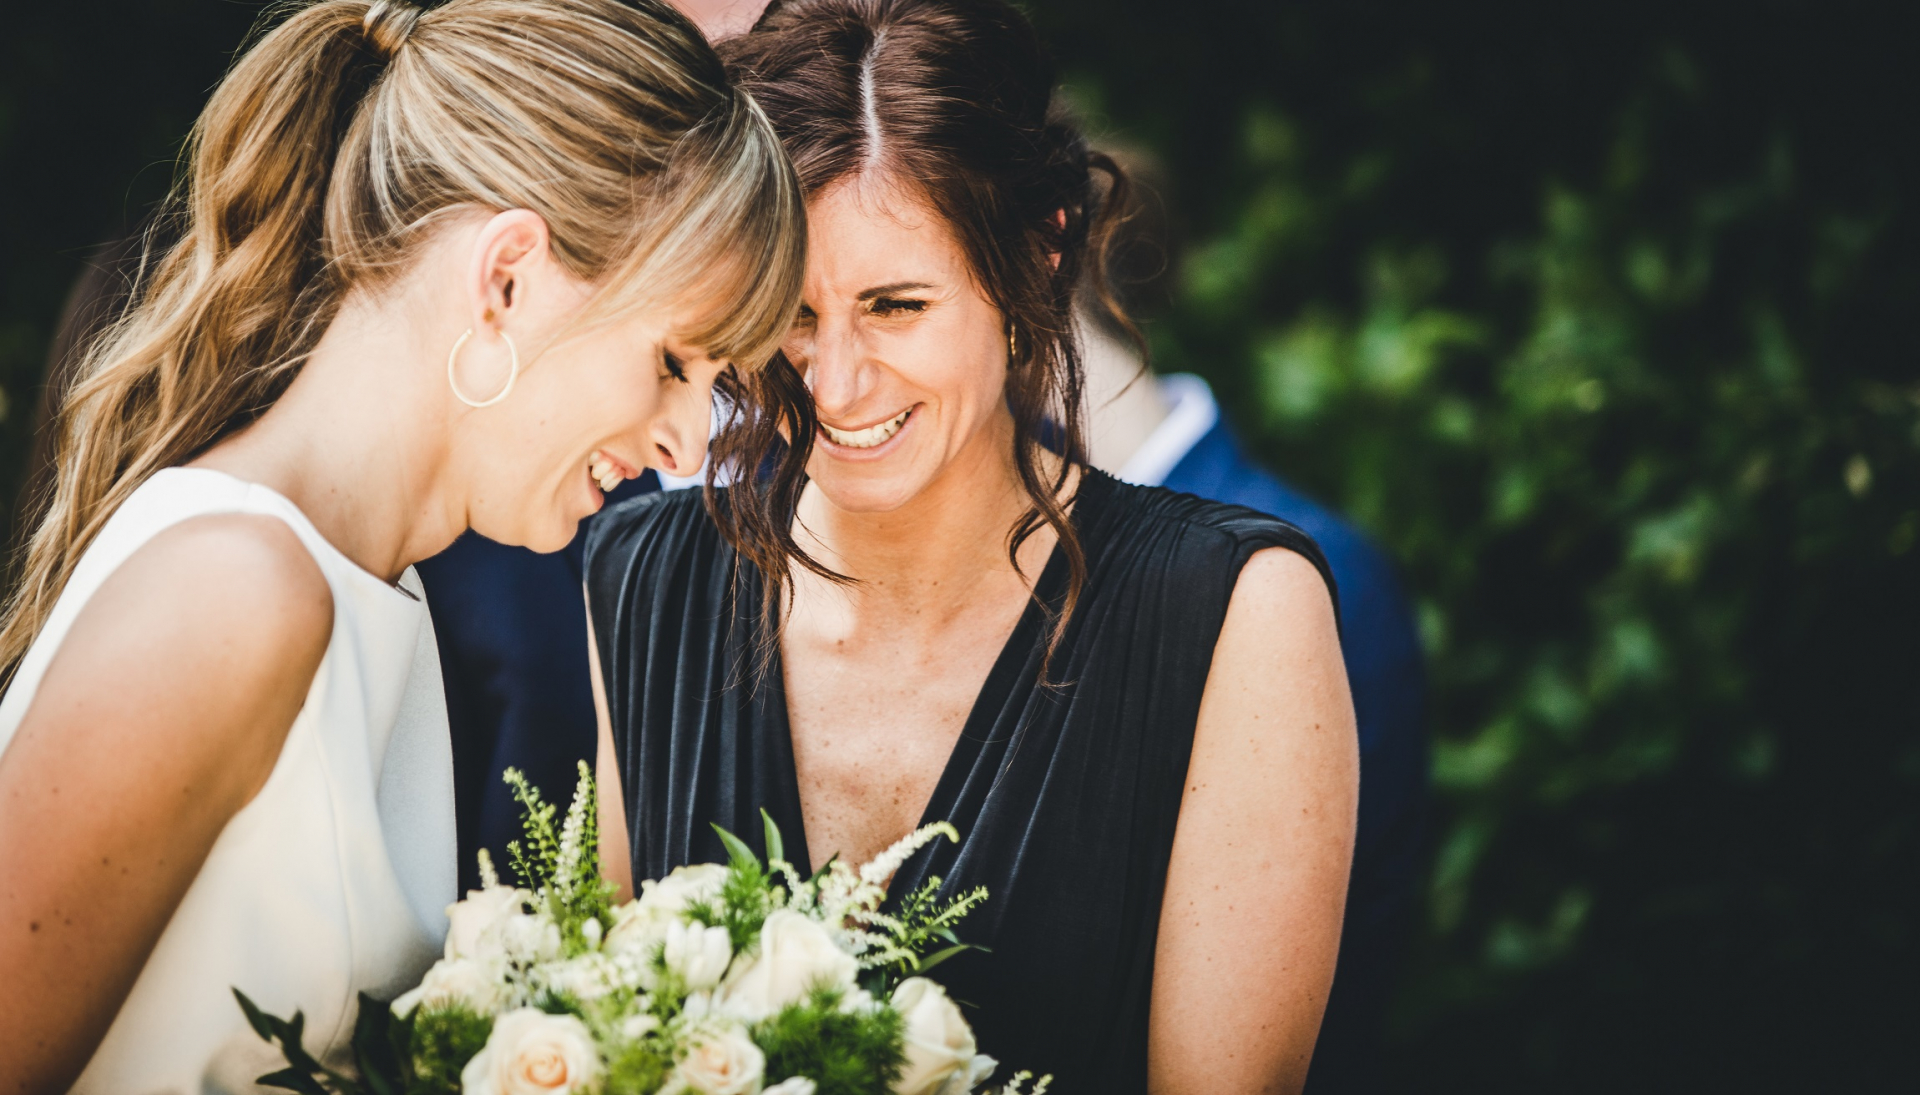 Italy Outdoor Elopement Bridal Image | After the ceremony, the bride's sister approaches her to congratulate her